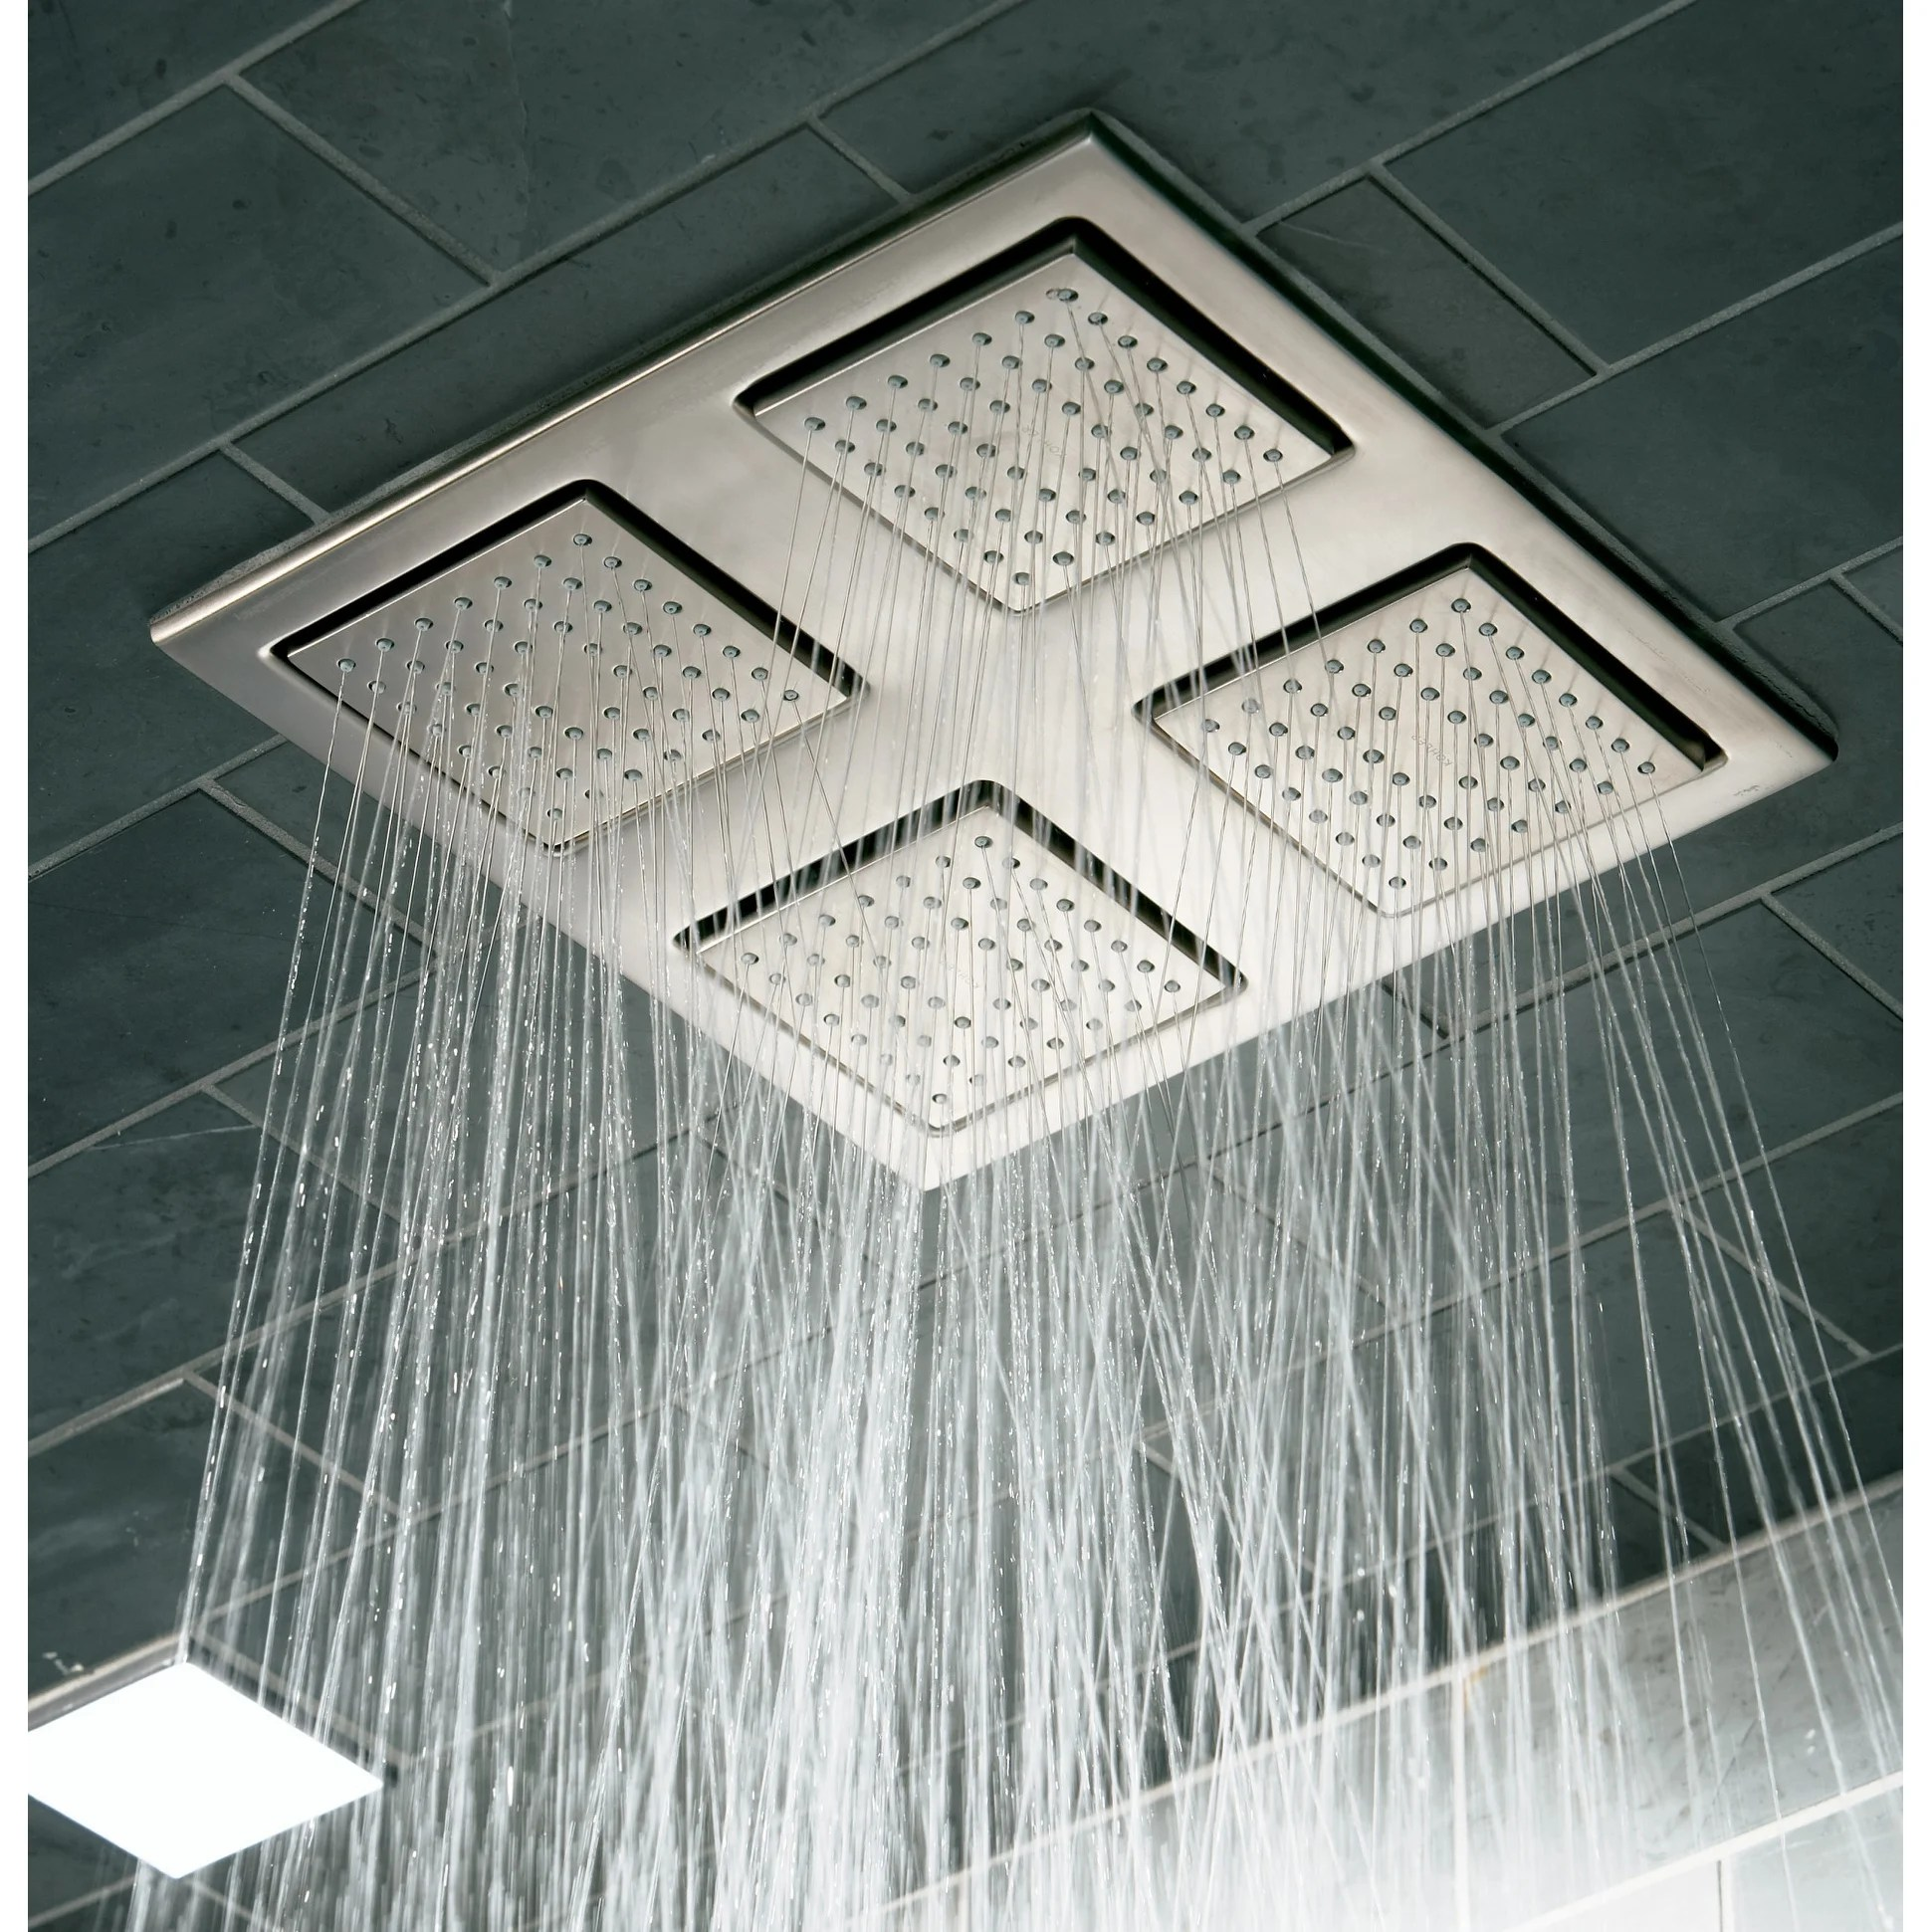 Kohler K 98740 Watertile 2 4 Gpm Ceiling Mount Rainhead With Four 22 Nozzle Sprayheads